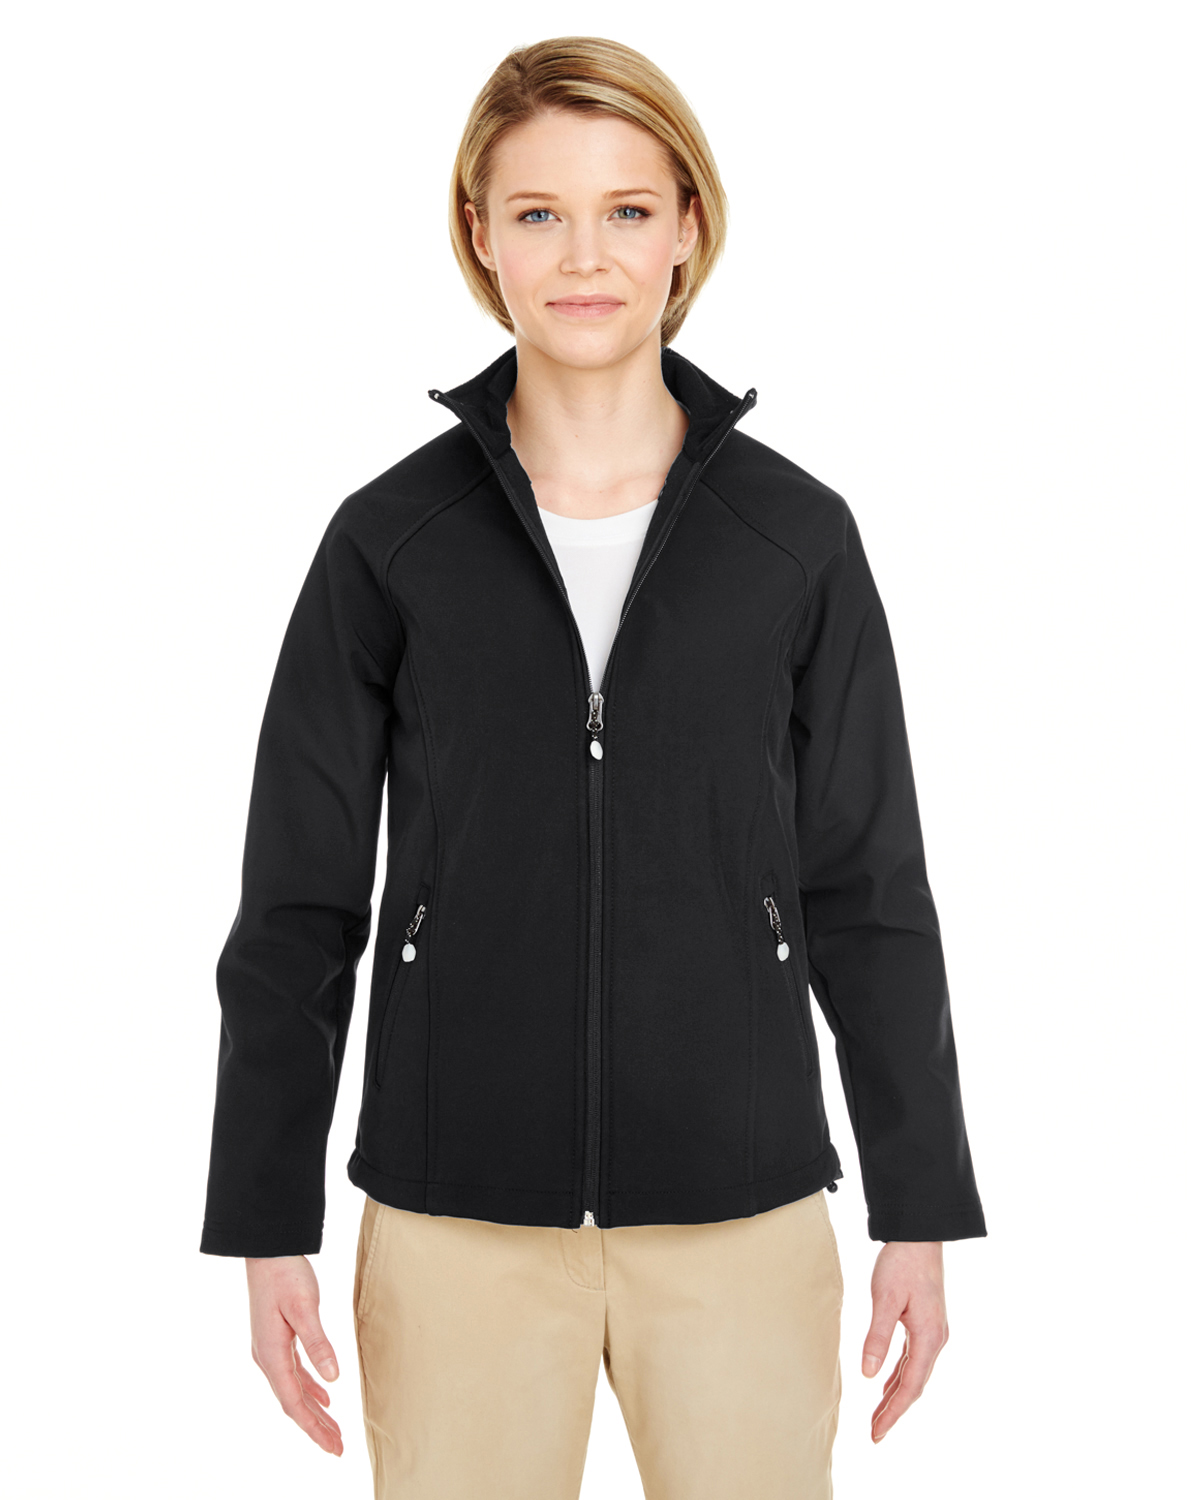 Ultra Club 8265L - Ladies' Soft Shell Jacket